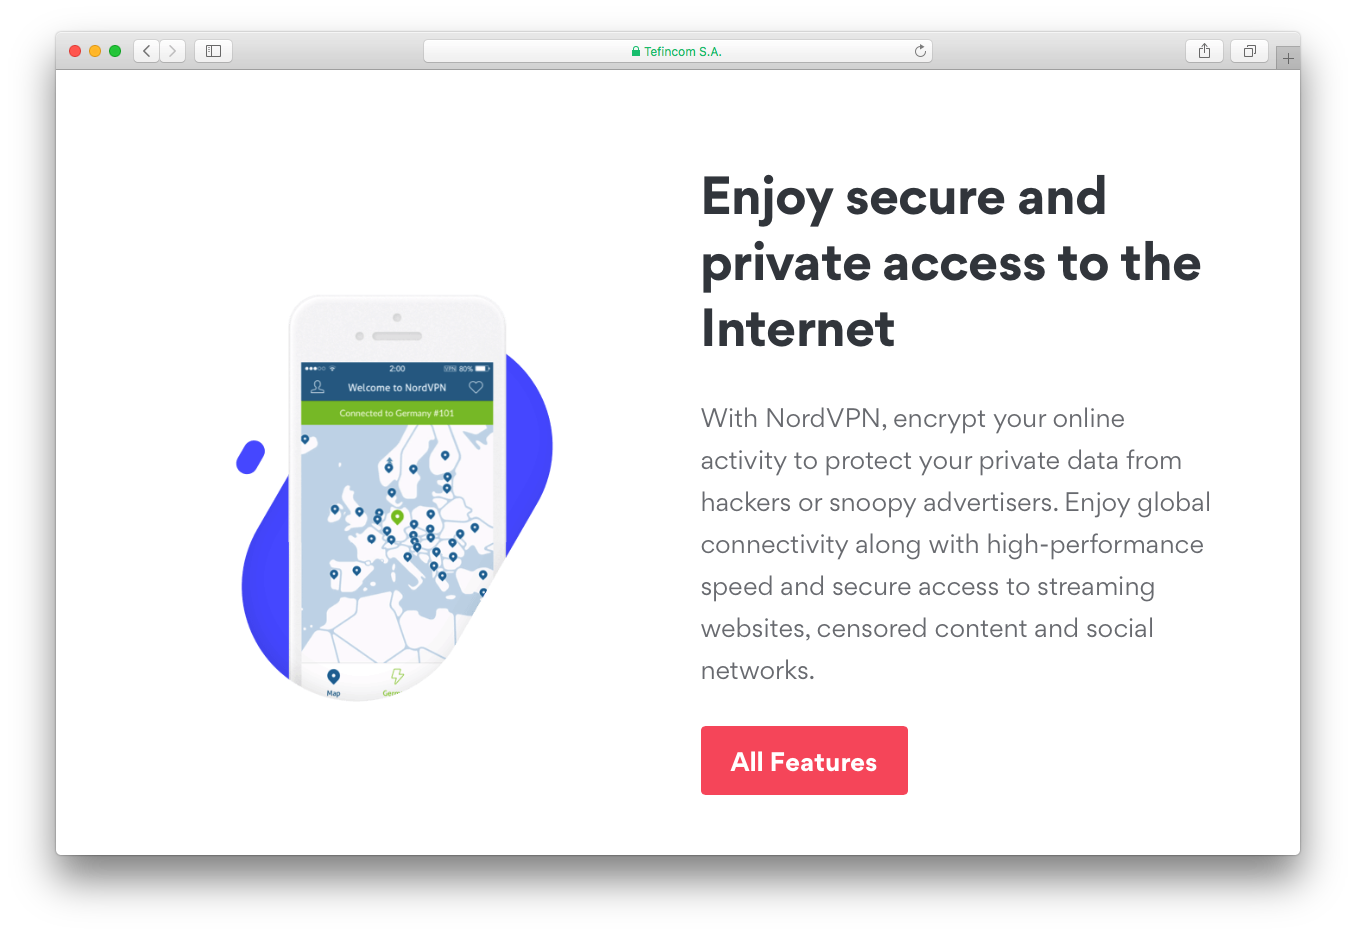 NordVPN secure private internet access encrypt online activity data